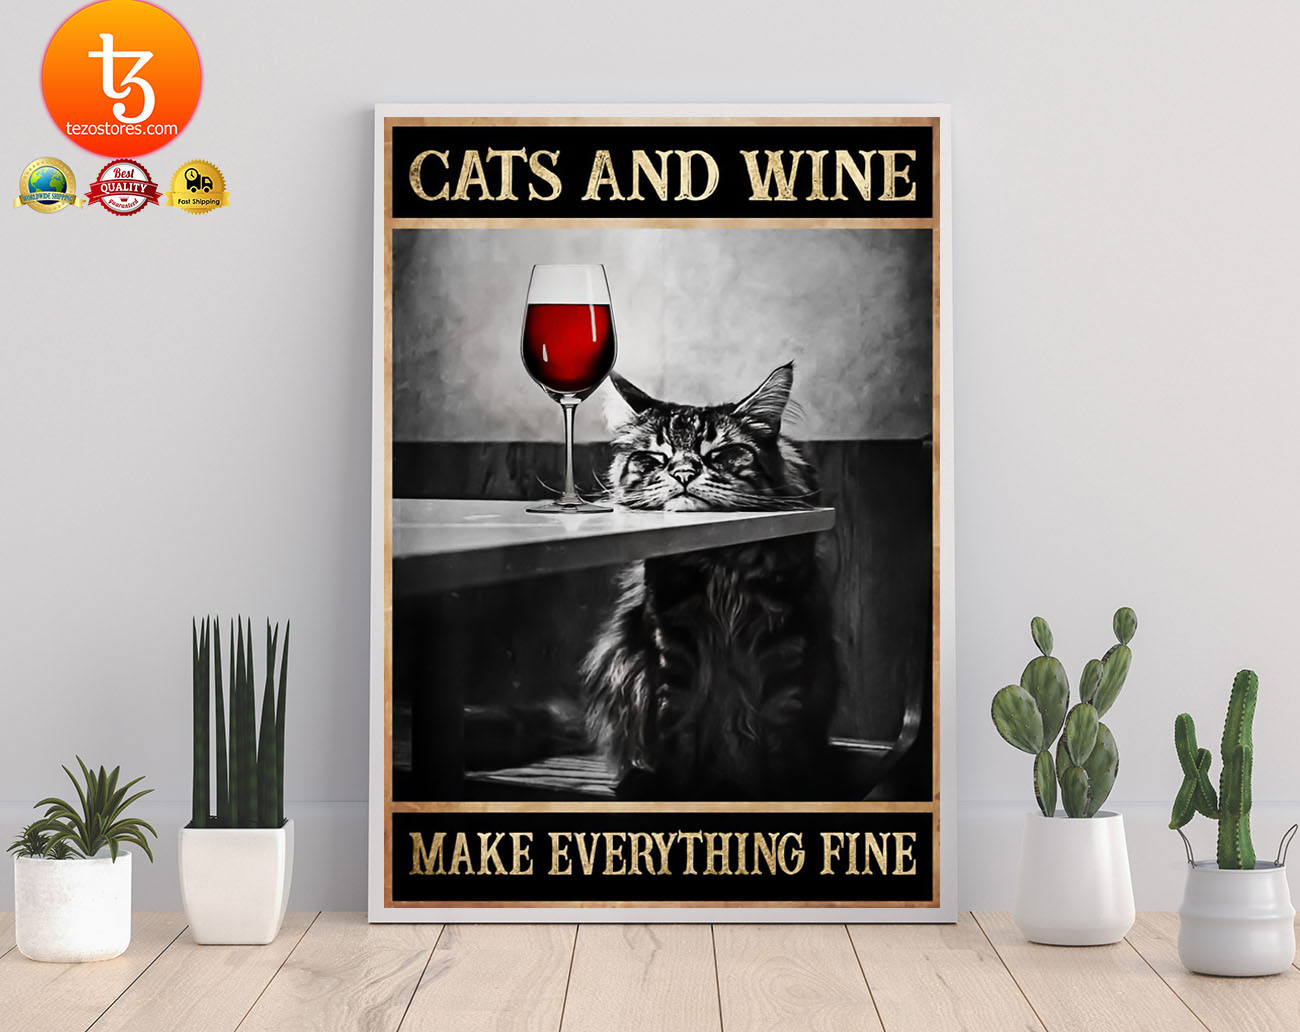 Cats and wine make everything fine poster 21